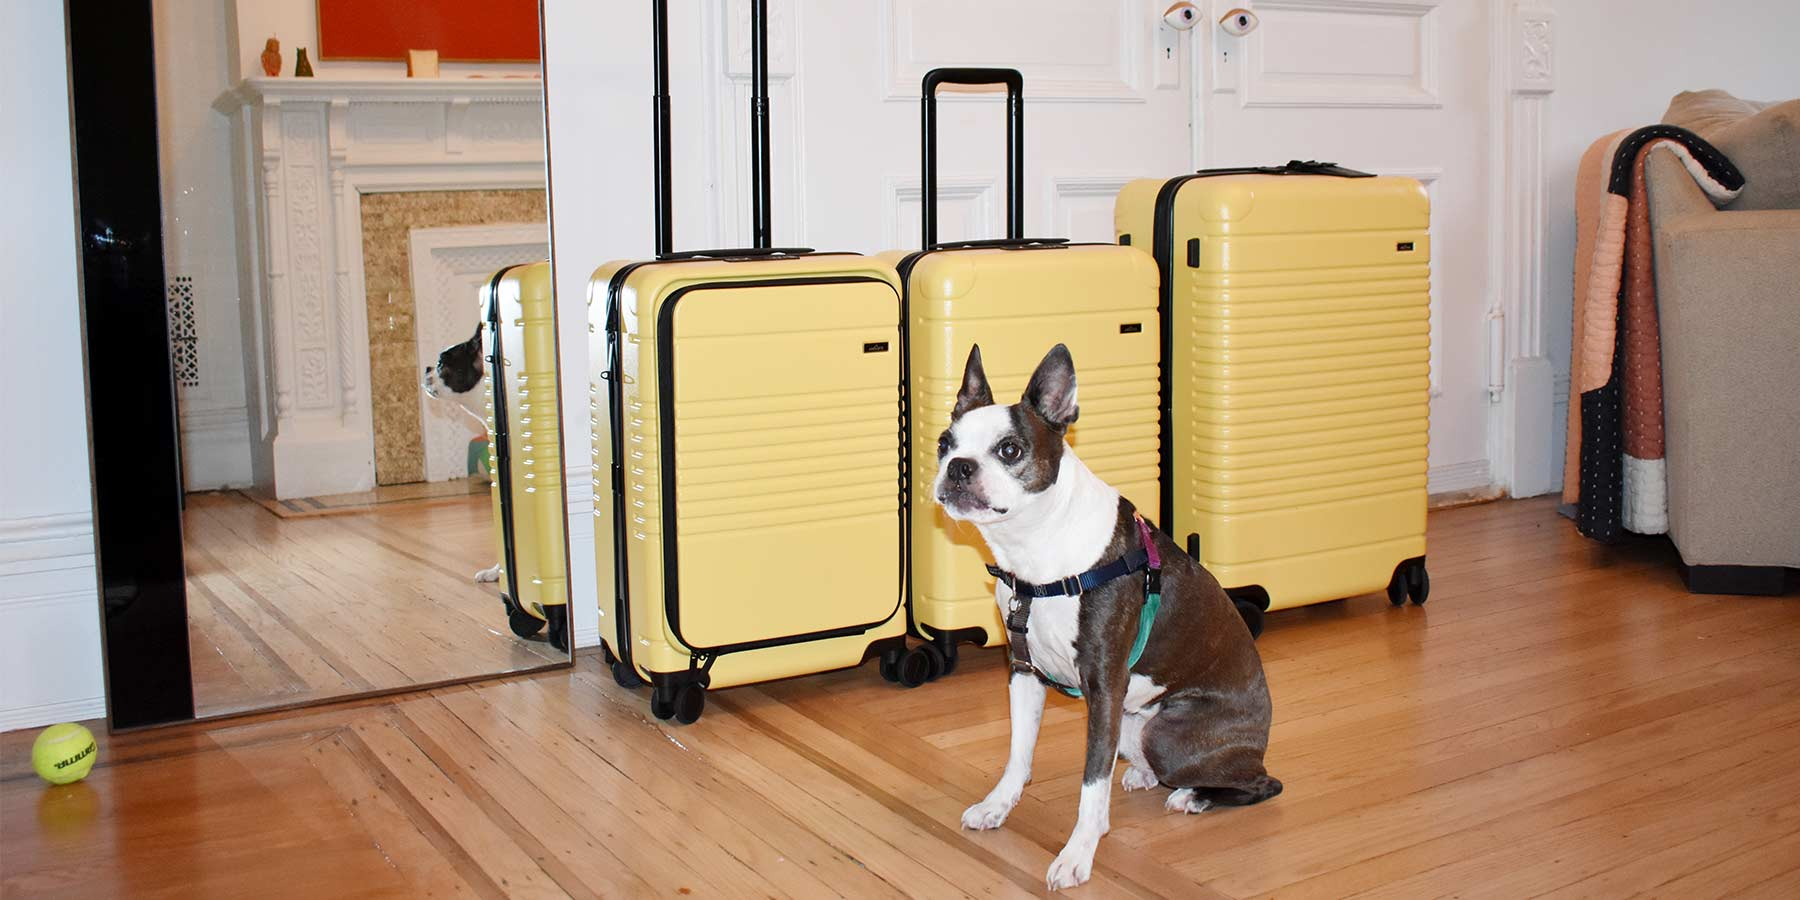 The Arlo Skye x Dusen Dusen collection of 3 zipper suitcases with Dusen Dusen's dog in front.